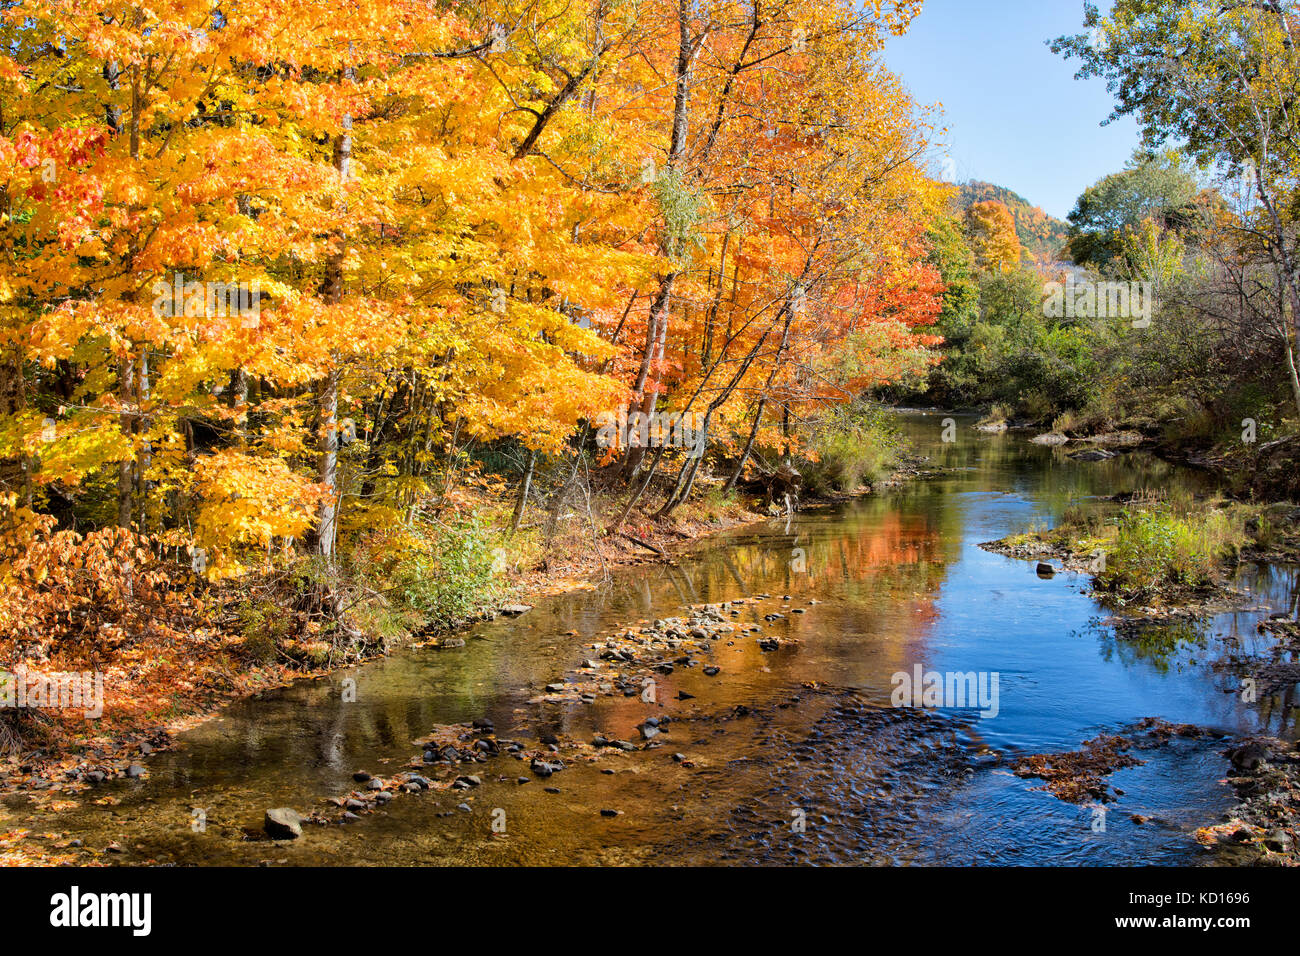 Fall foliage reflected in Trout Creek, Moores Mills, Waterford, New Brunswick, Canada - Stock Image